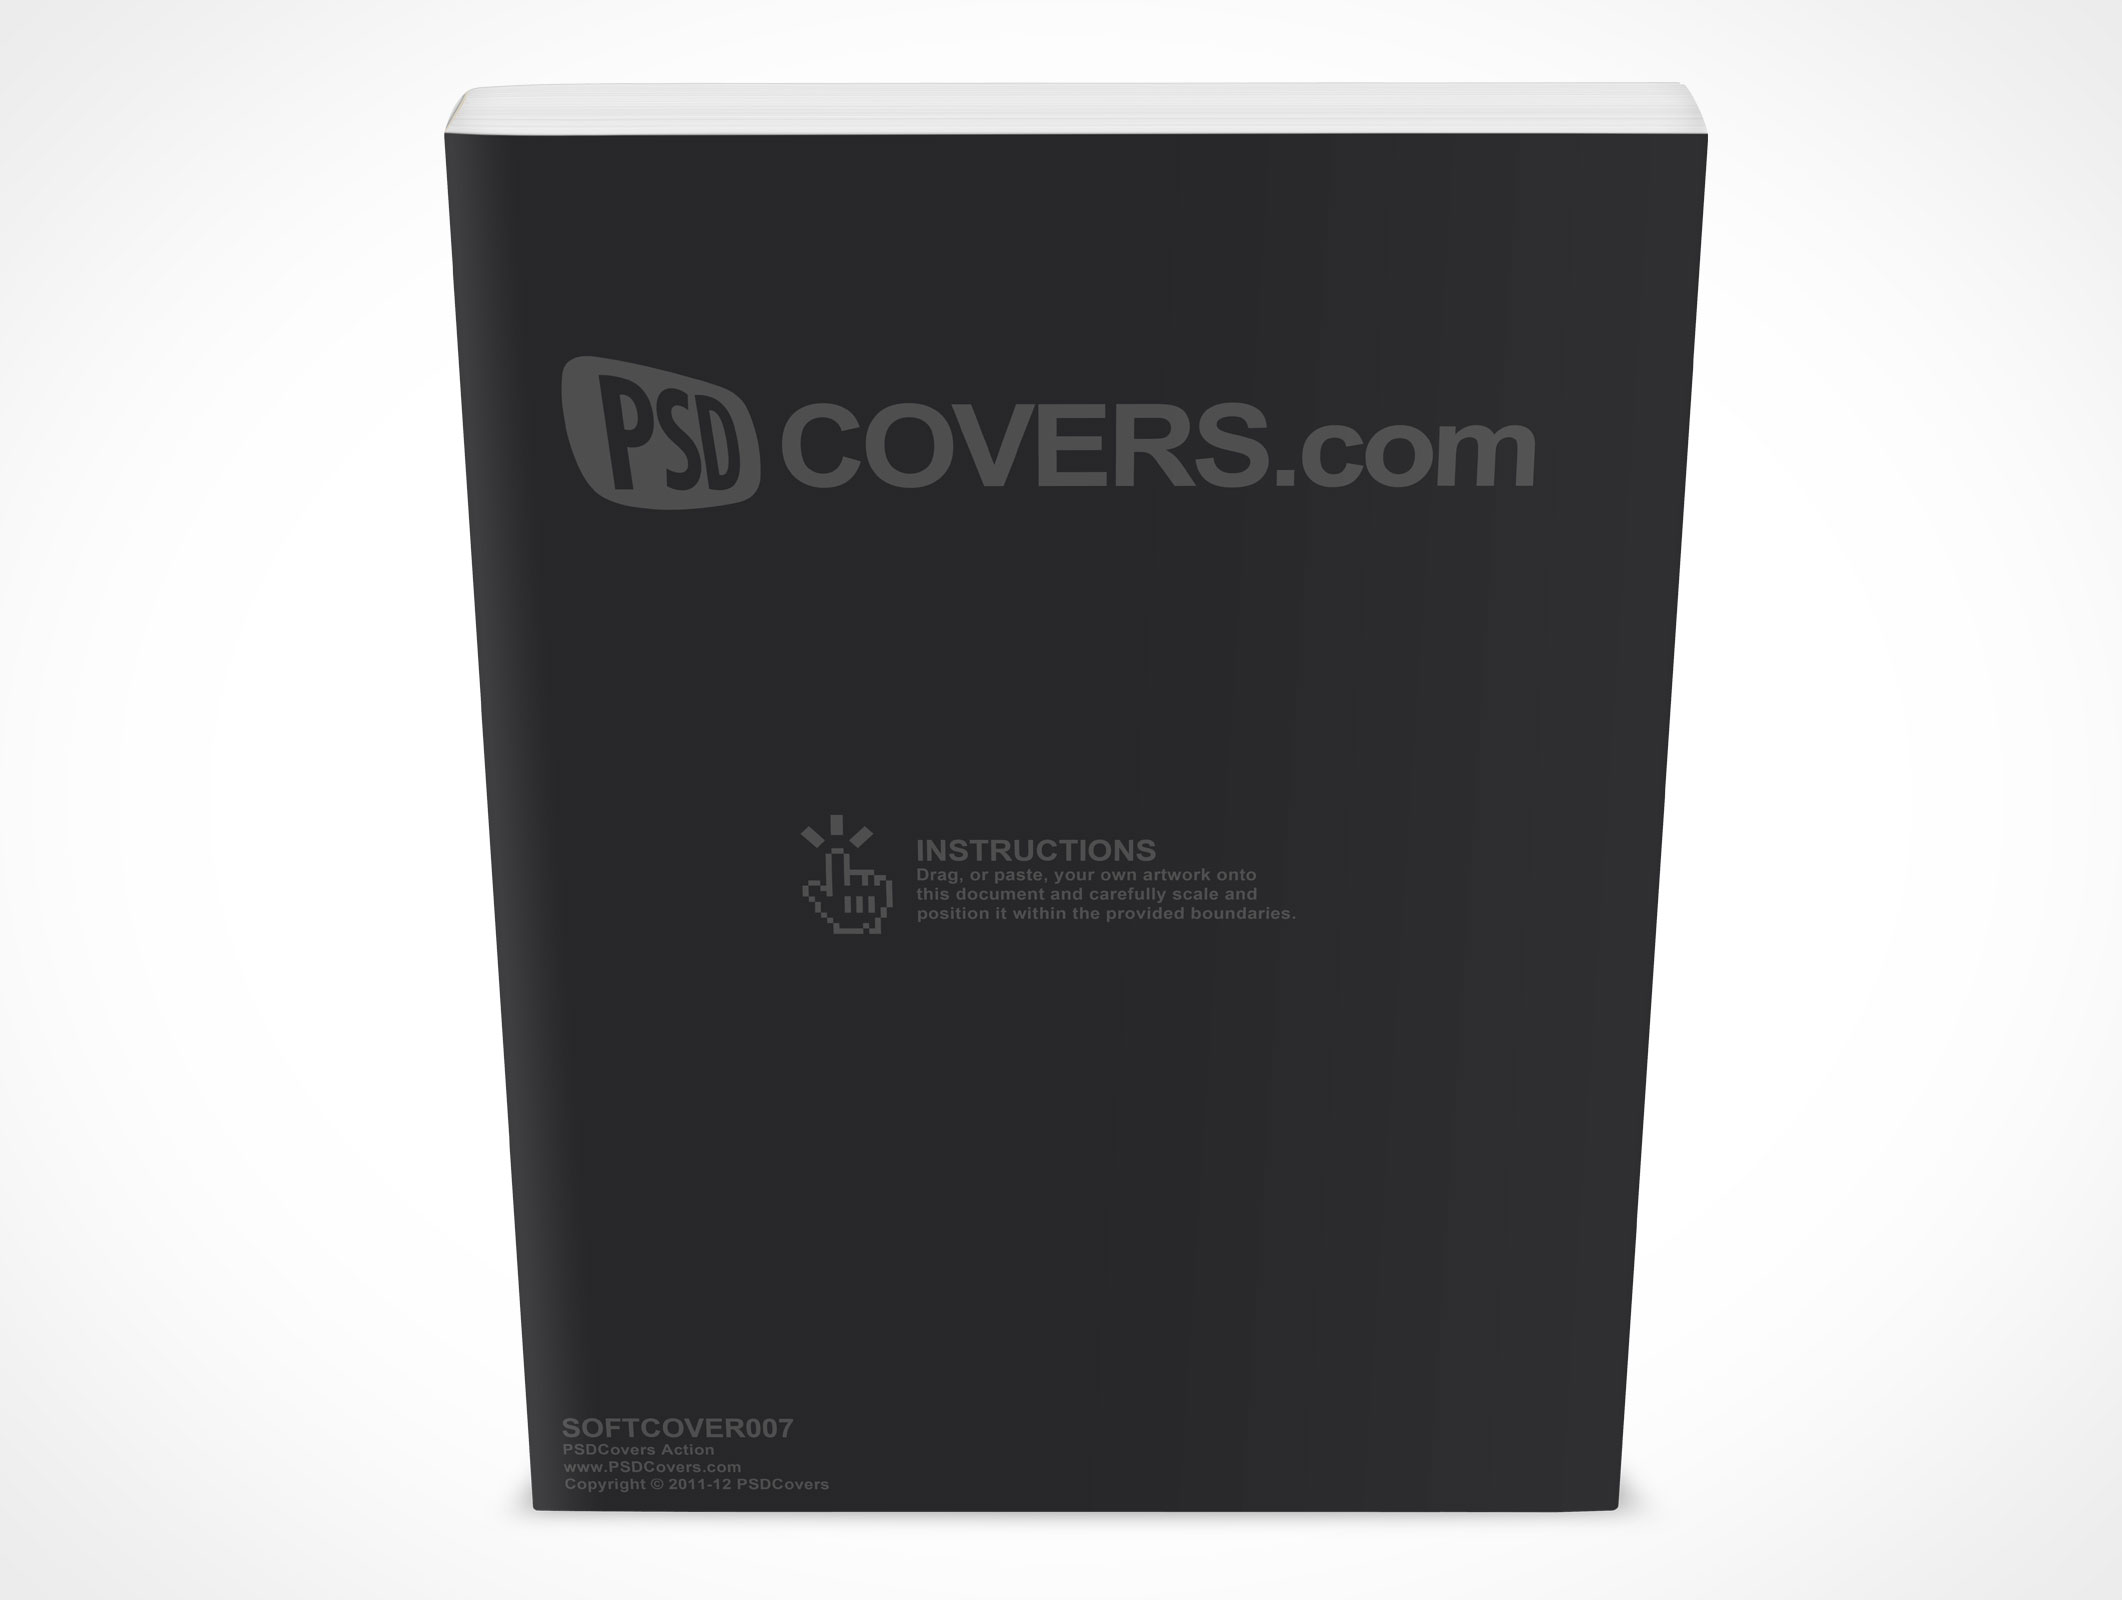 SOFTCOVER007